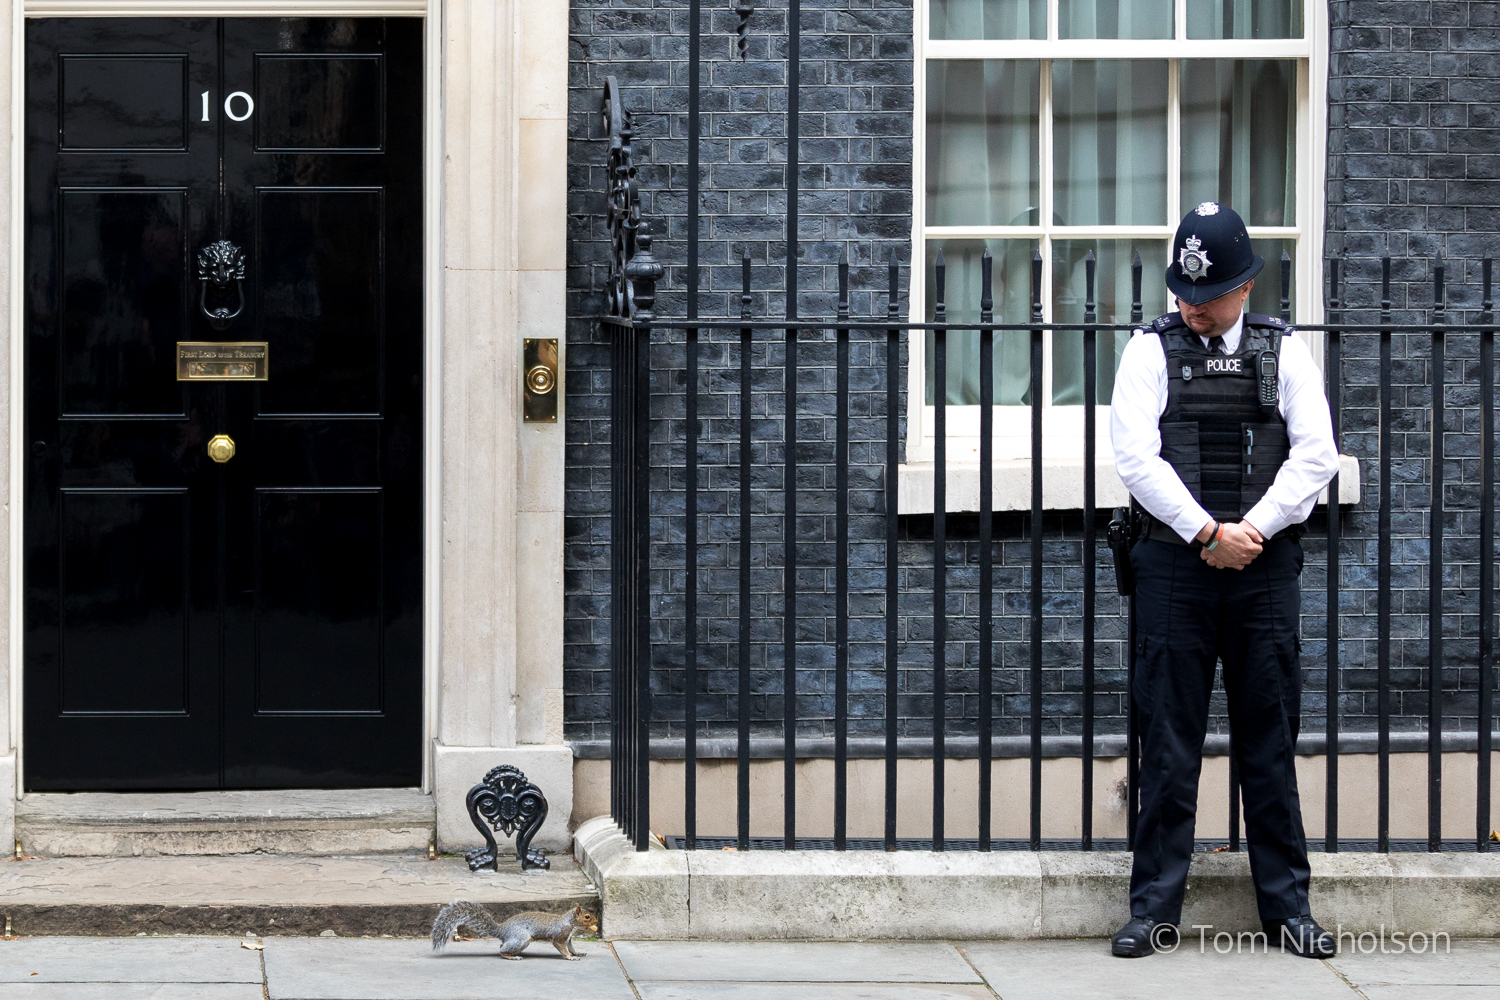 ©2017 Tom Nicholson. 26/09/2017. London, UK. A policeman looks as a squirrel runs past No 10 Downing Street.